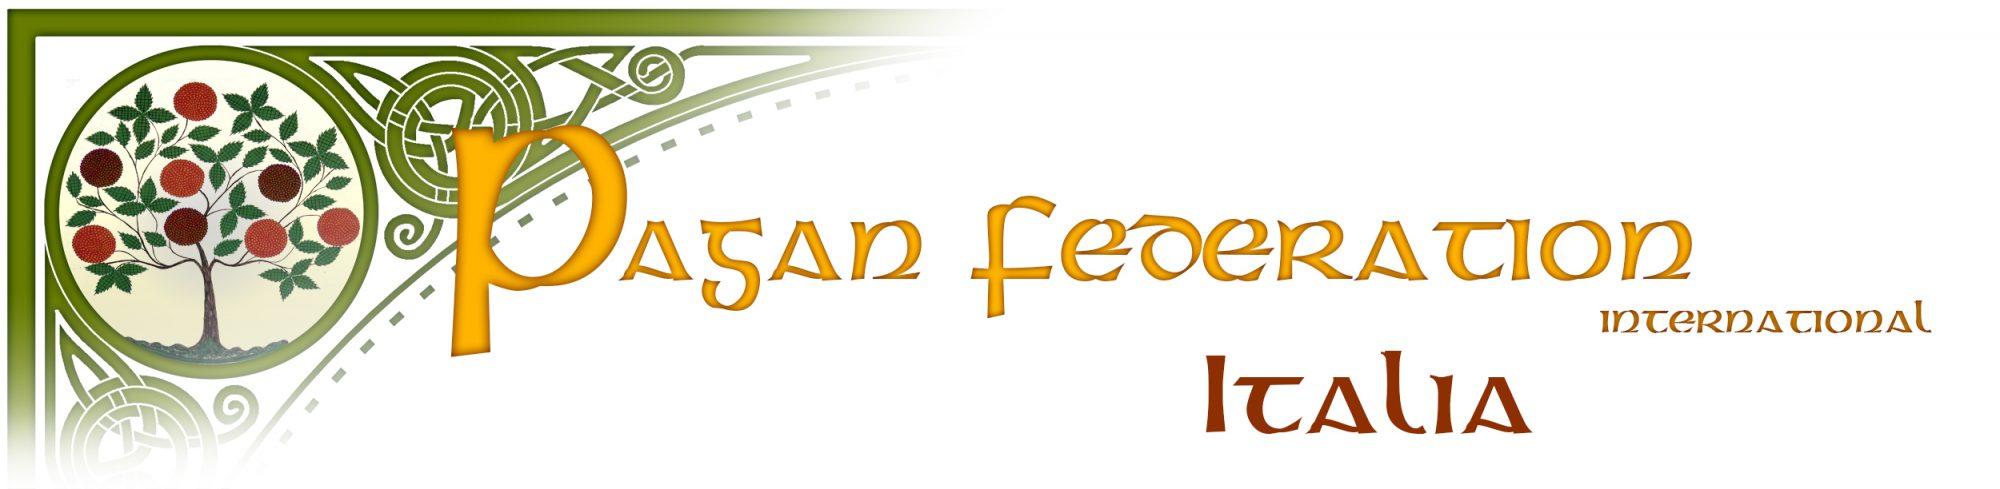 Pagan Federation International Italia